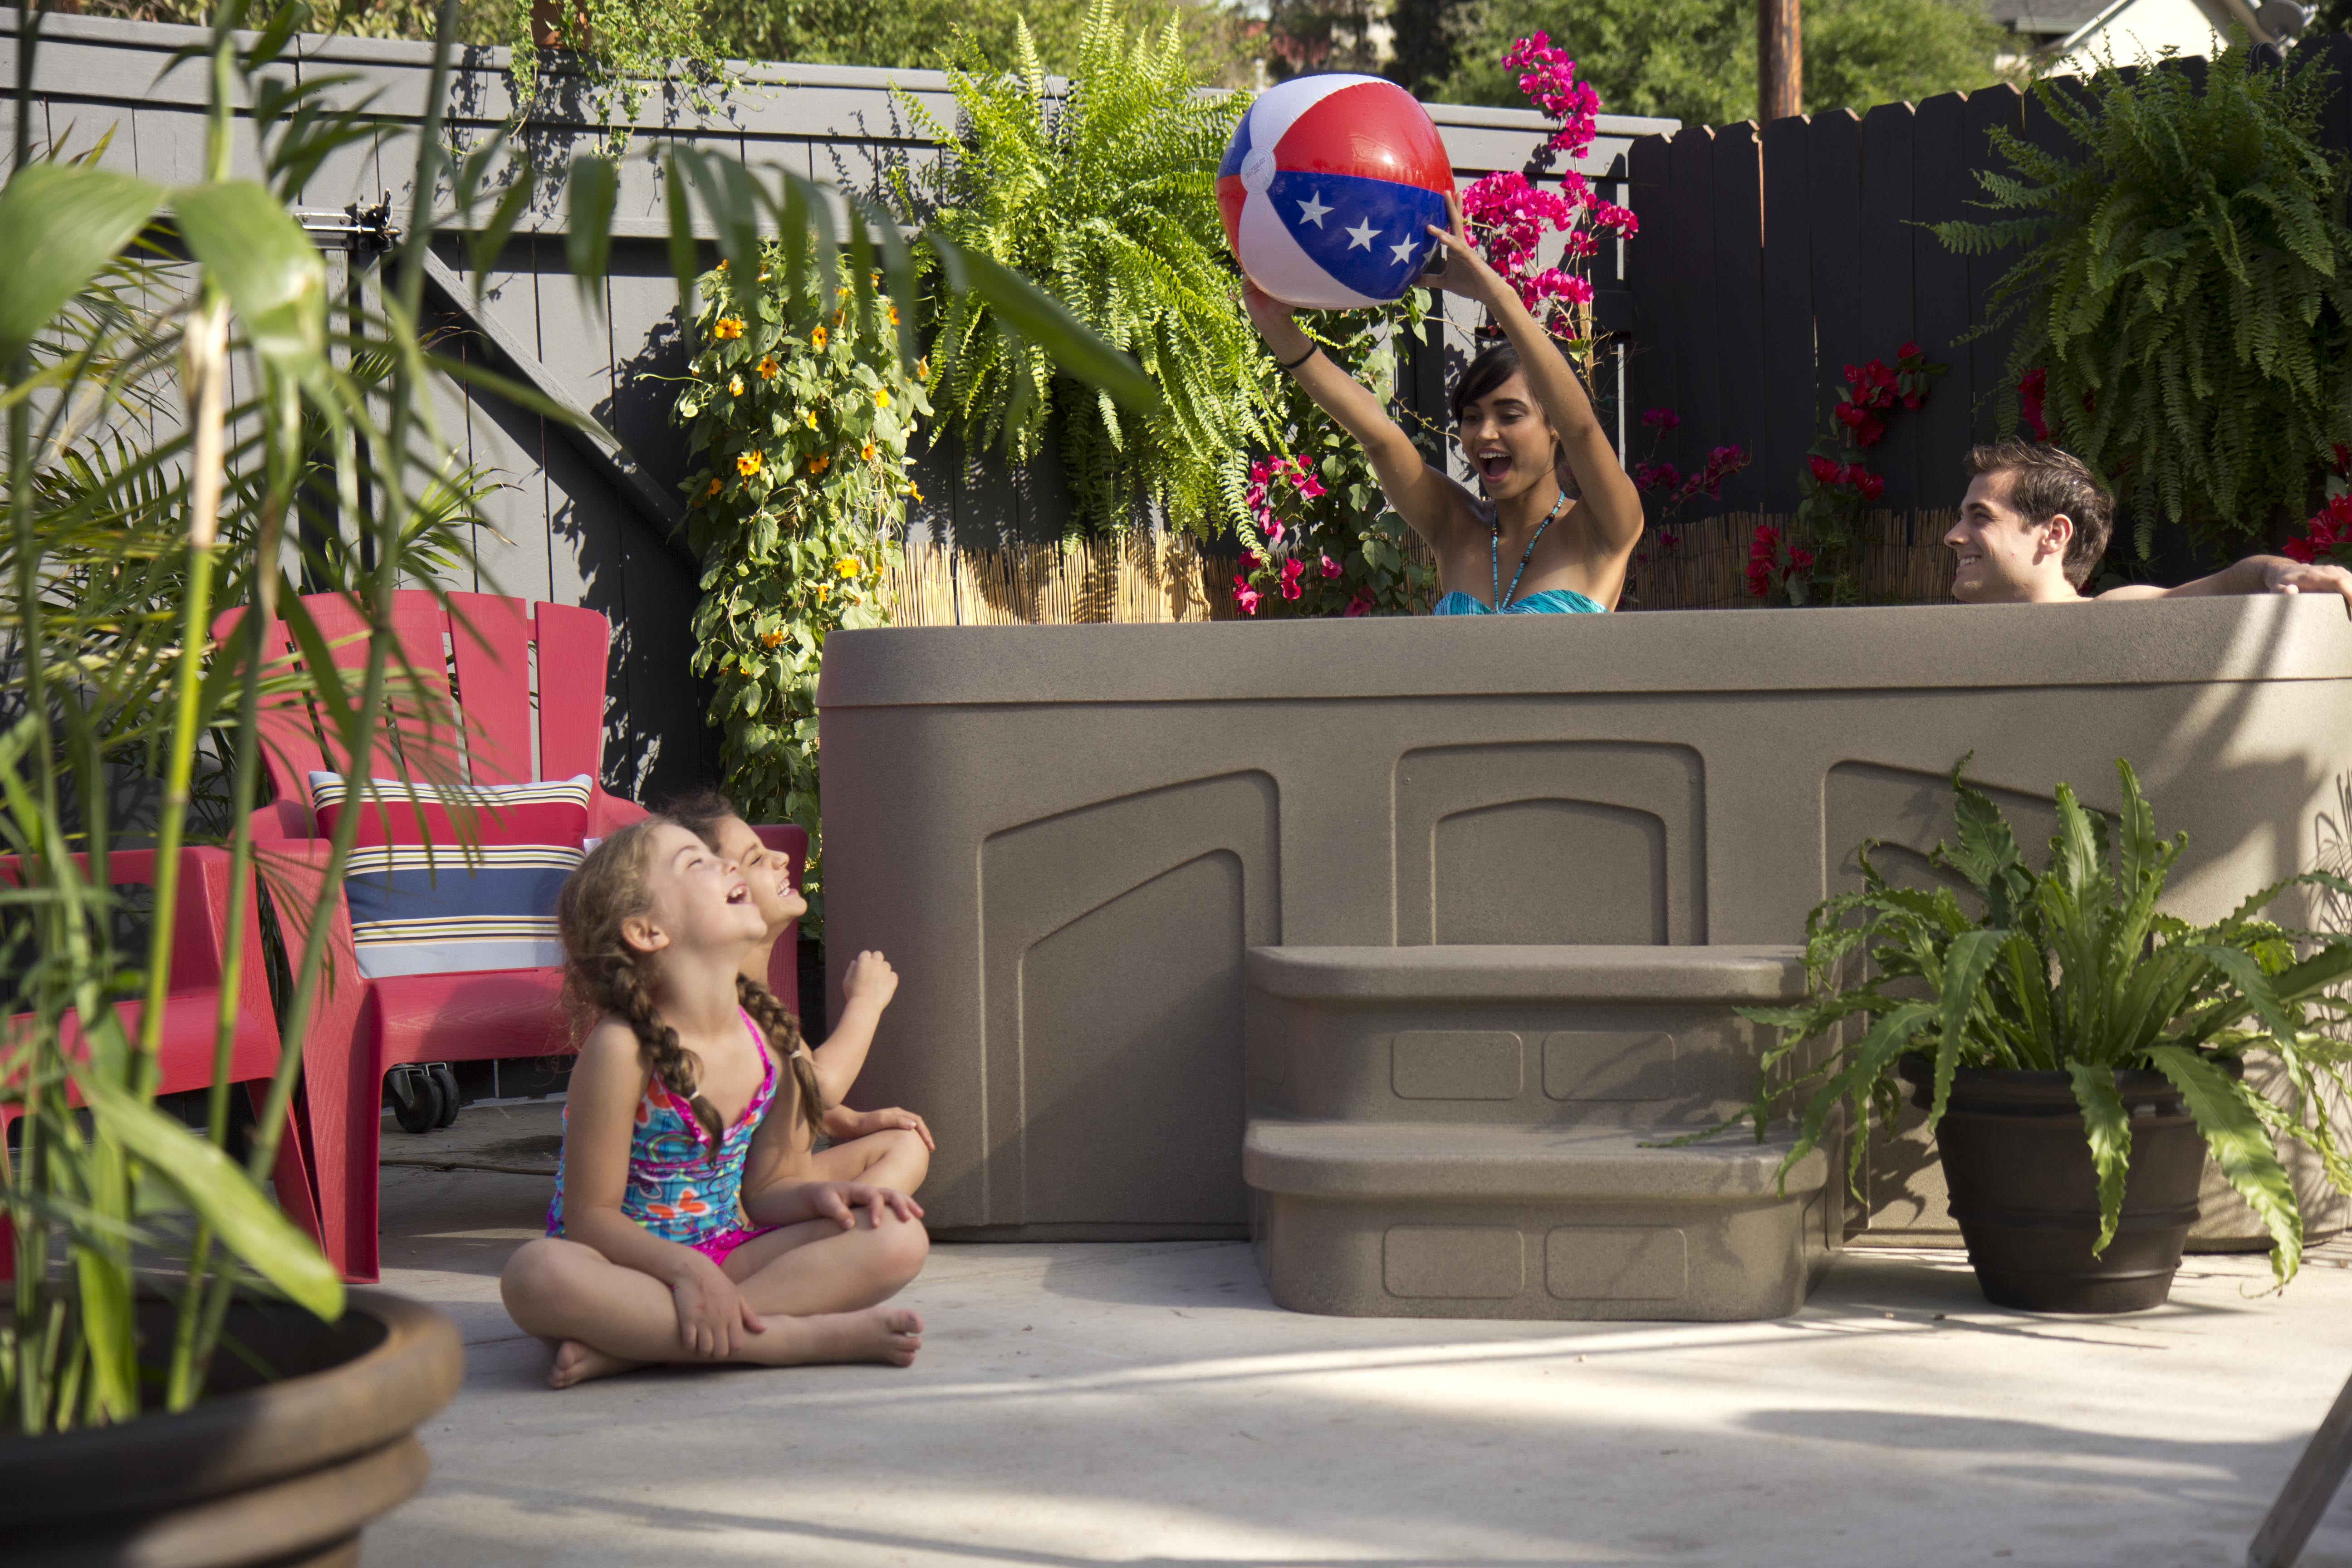 4 Spa Games to play in your Hot Tub (the G rated version!)